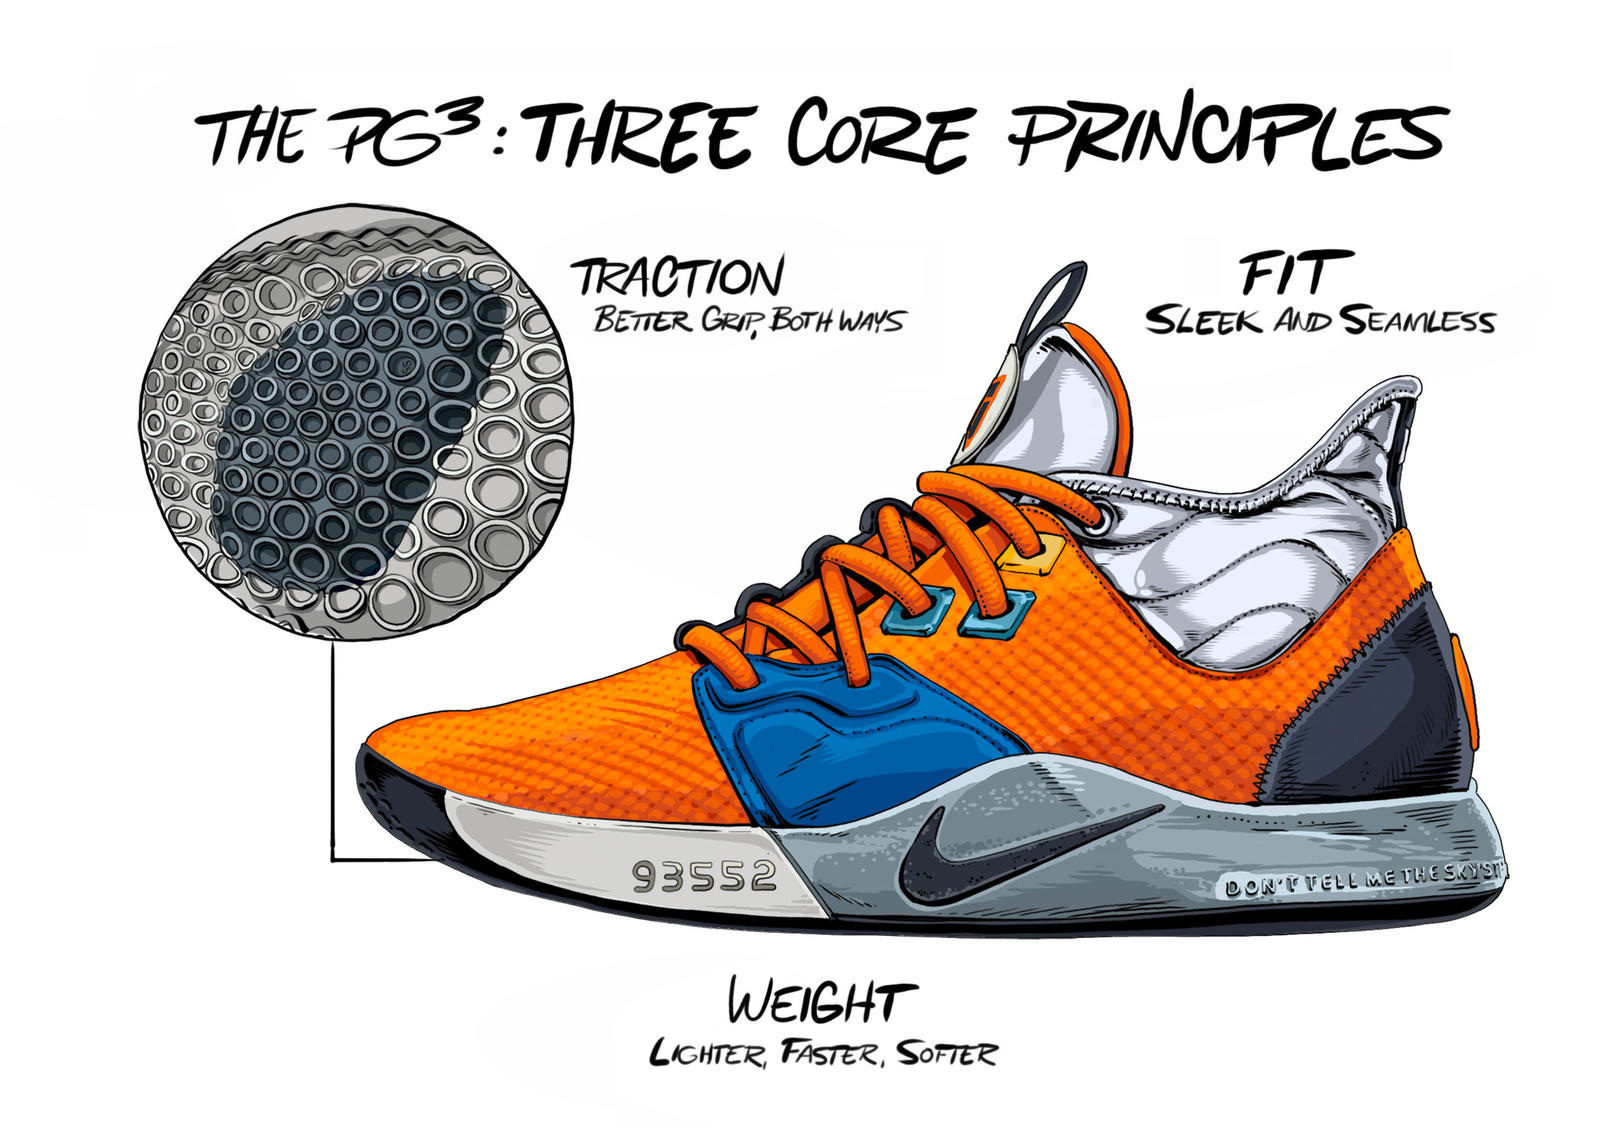 1a0fb778ffde Introducing Paul George s Third Signature Shoe